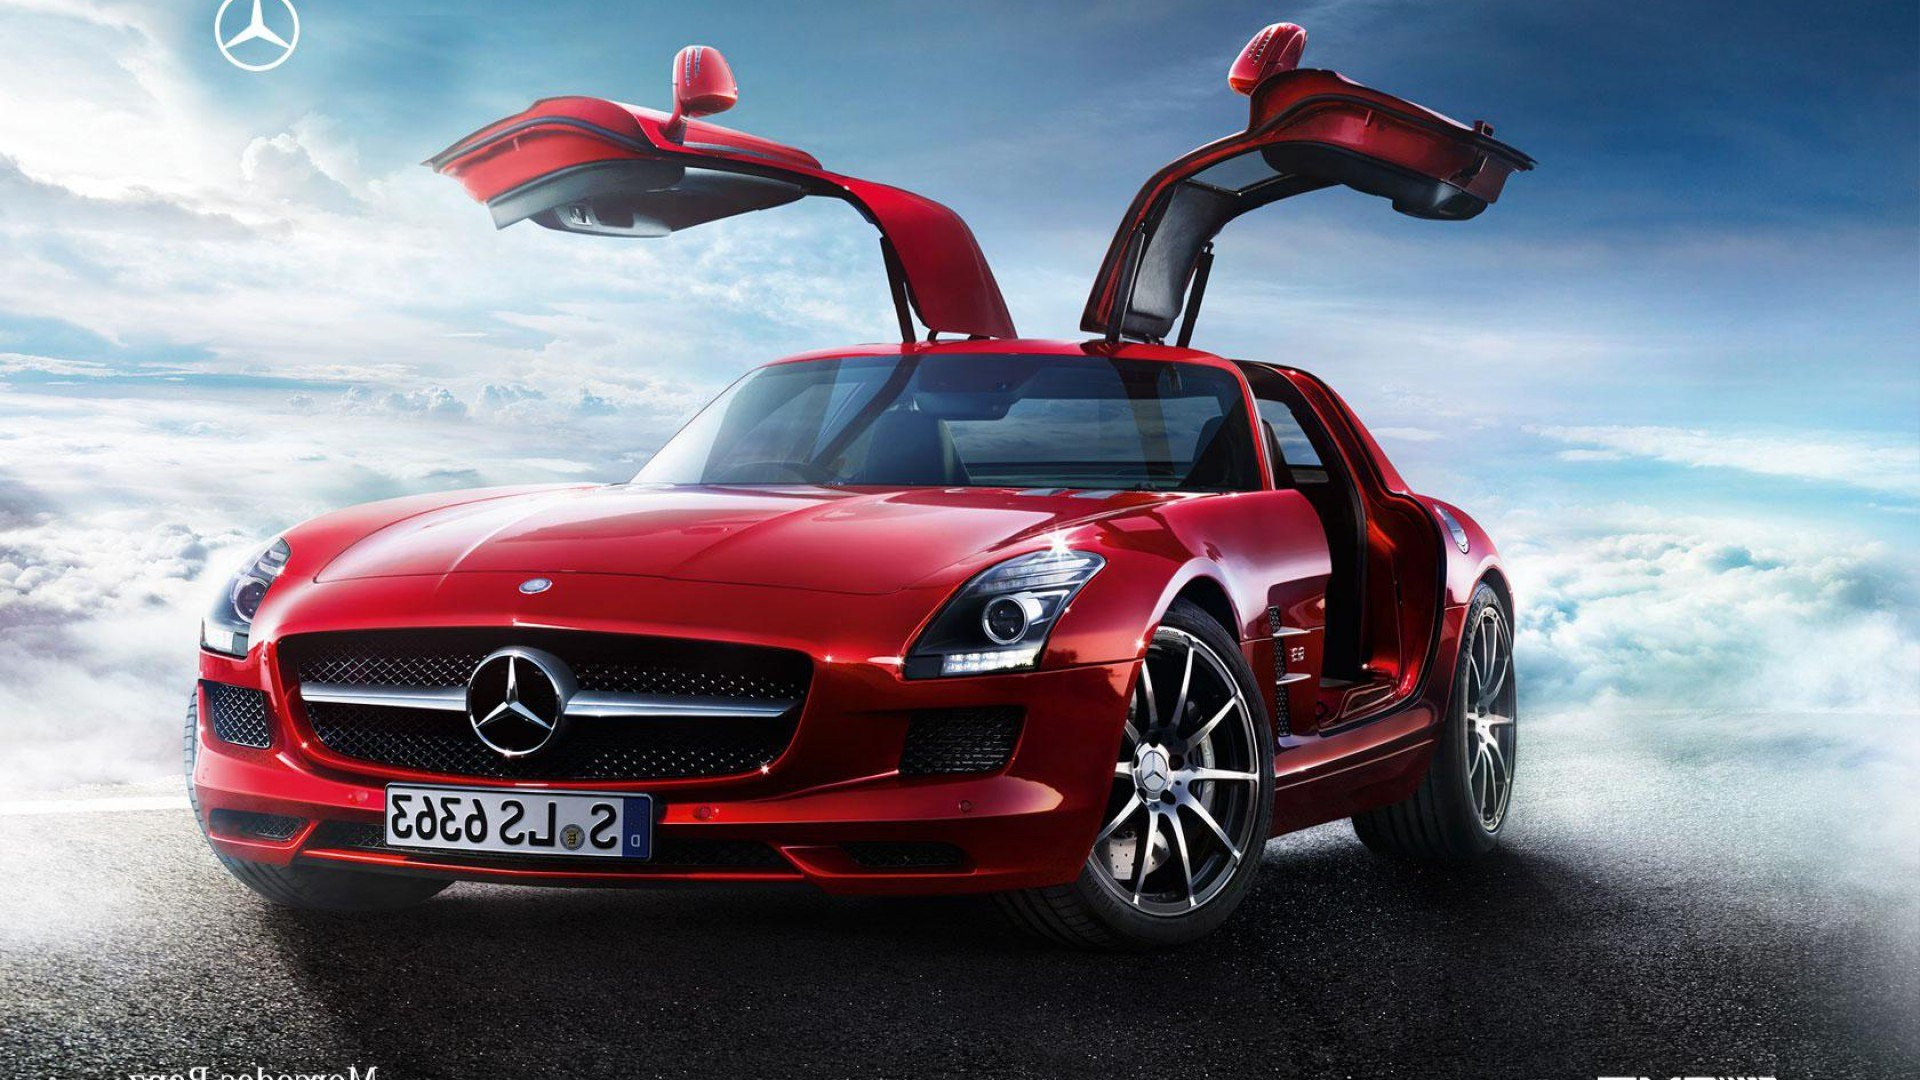 Latest Mercedesblog 2 Years Online Time To Celebrate The Free Download